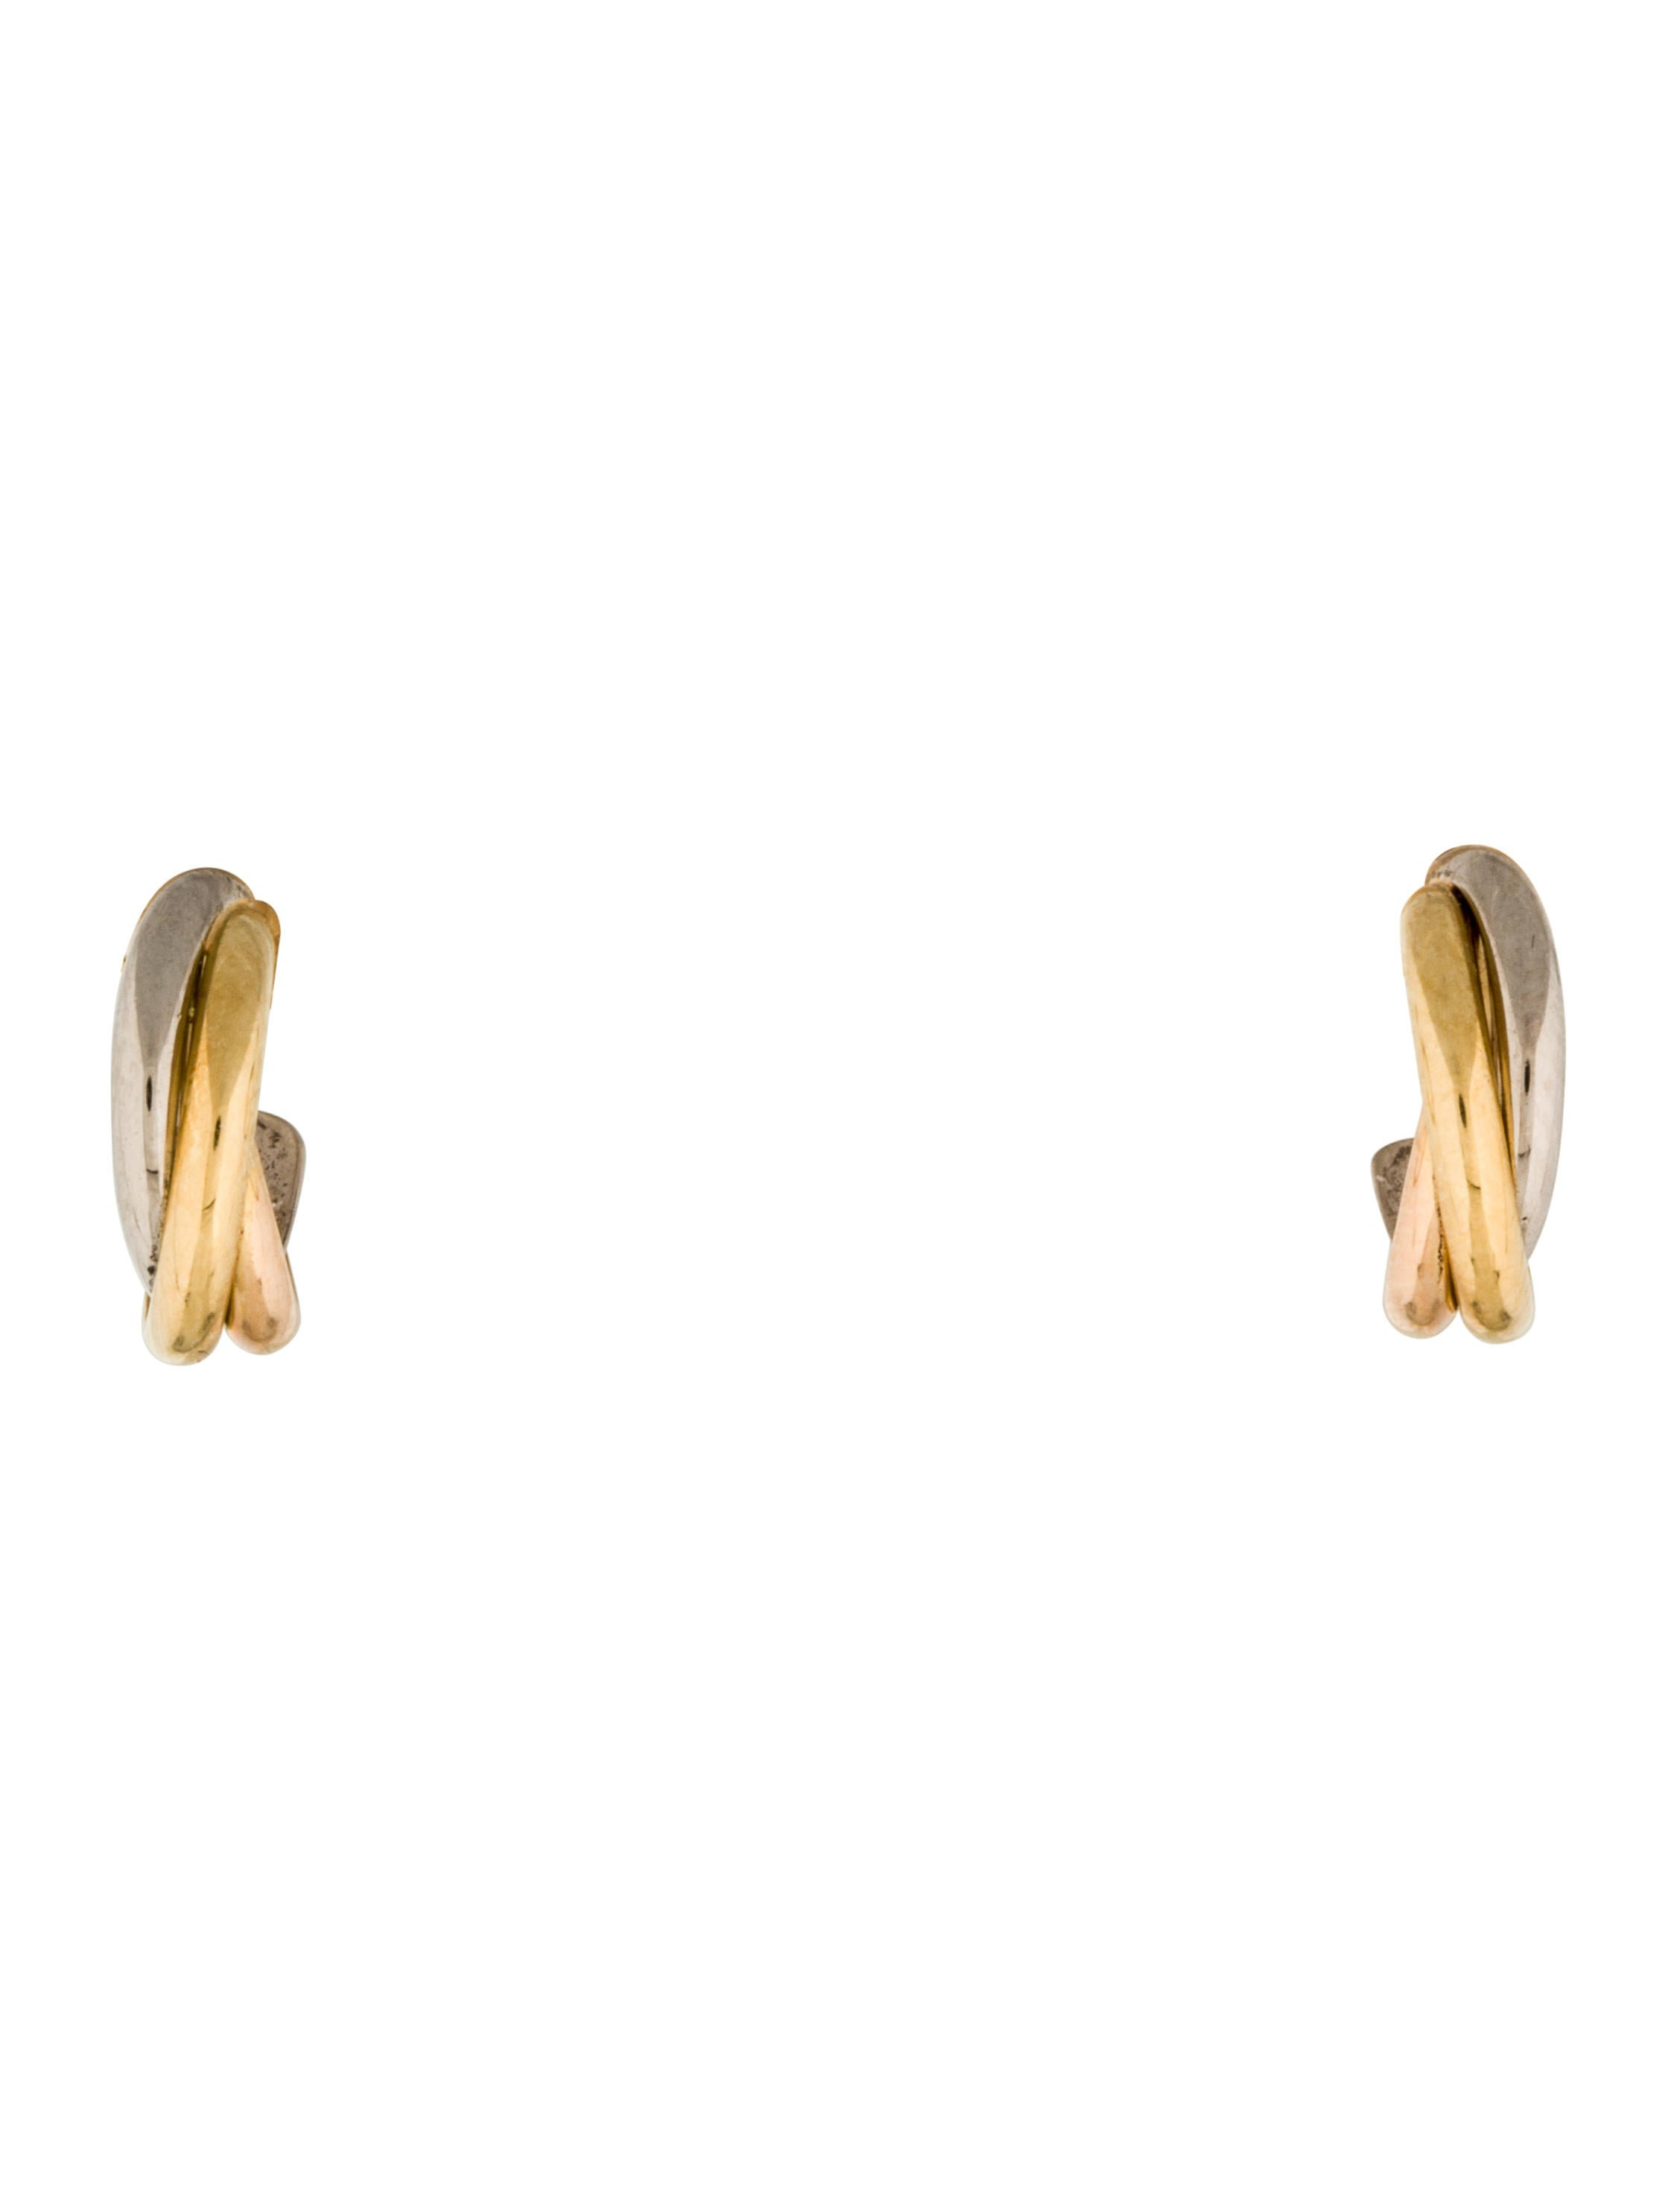 rose cartier products de trinity gold medium earrings yellow vintage hoop white